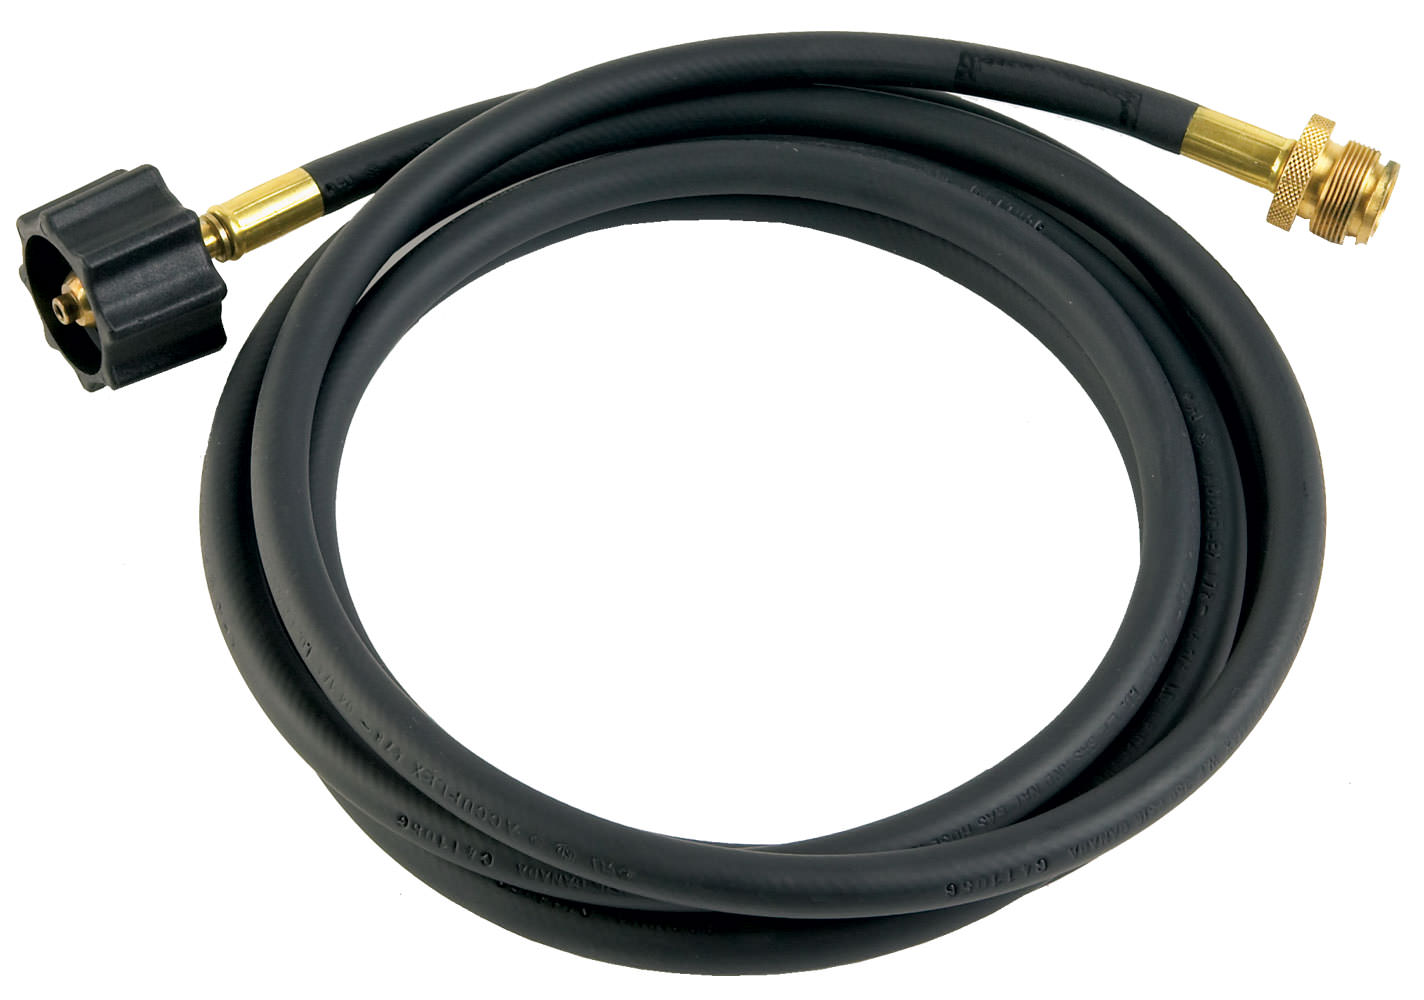 12 Propane Hose Assembly With Acme Nut Mr Heater F273703 144 Aluminum Wiring Pigtail Hoses And Adapters Camping World